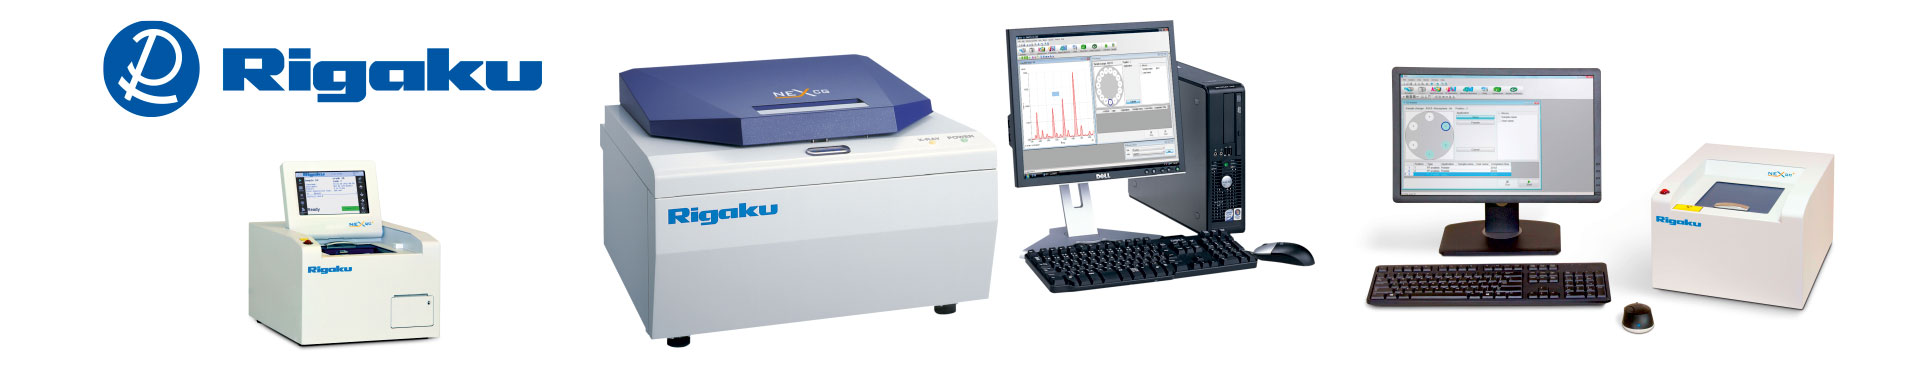 data/slider/agilent-slide-3.jpg